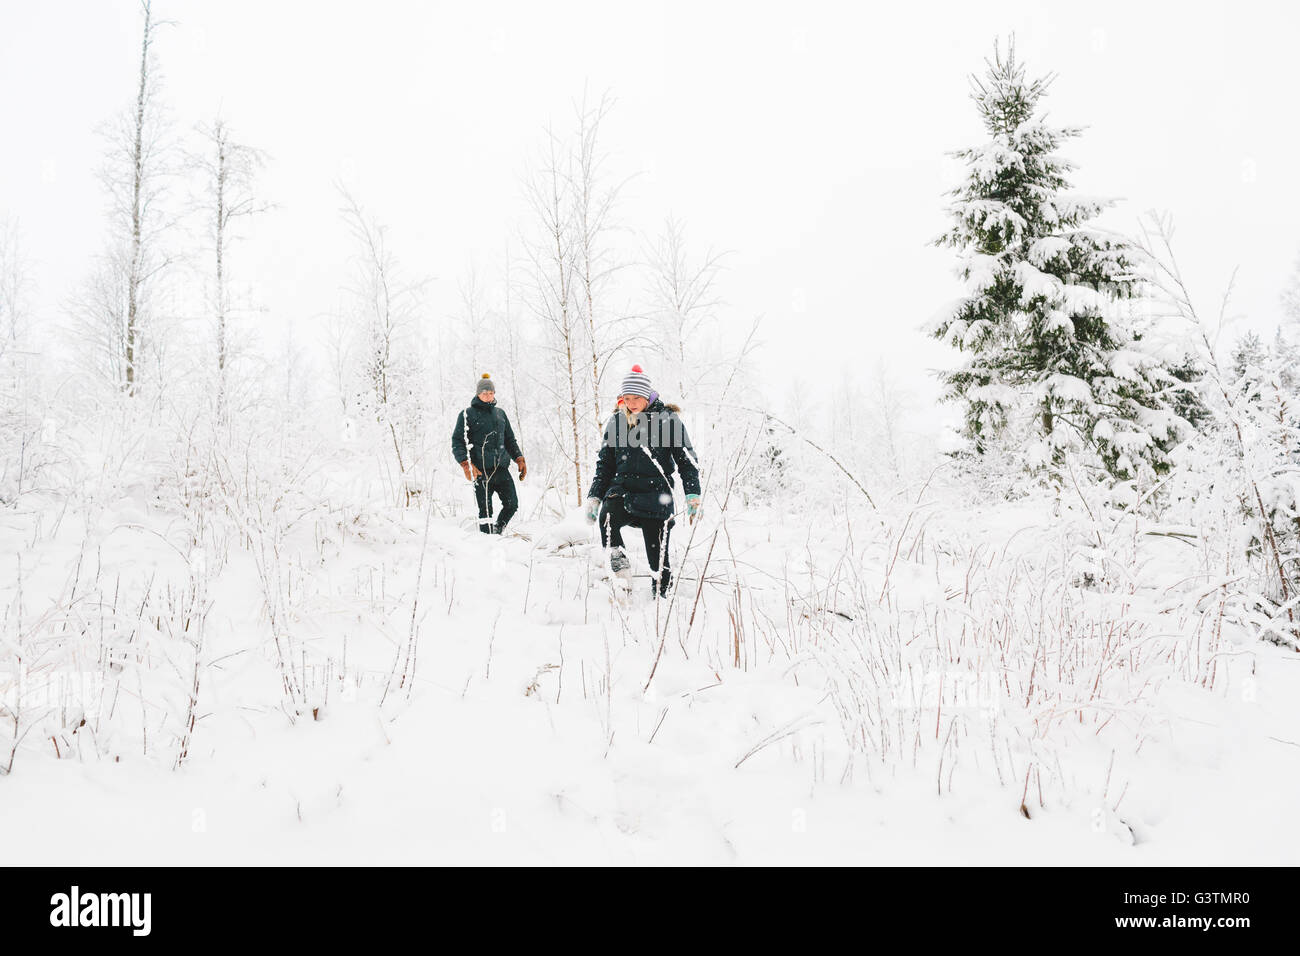 Finland, Jyvaskyla, Saakoski, Young couple walking among bare trees in winter - Stock Image